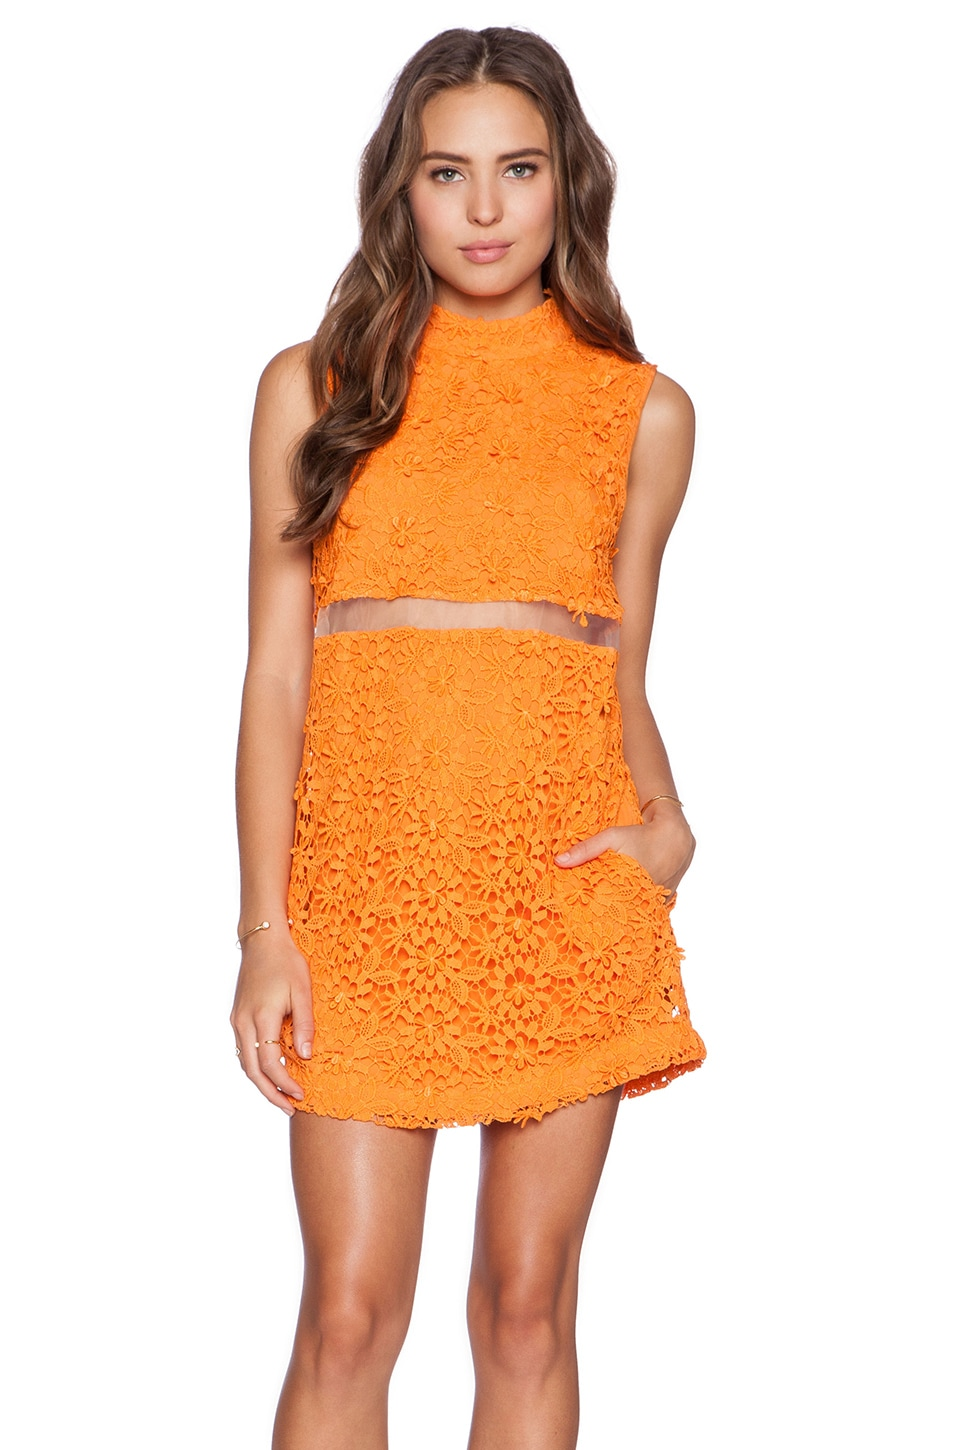 Casper & Pearl Mexico City Dress in Orange Lace